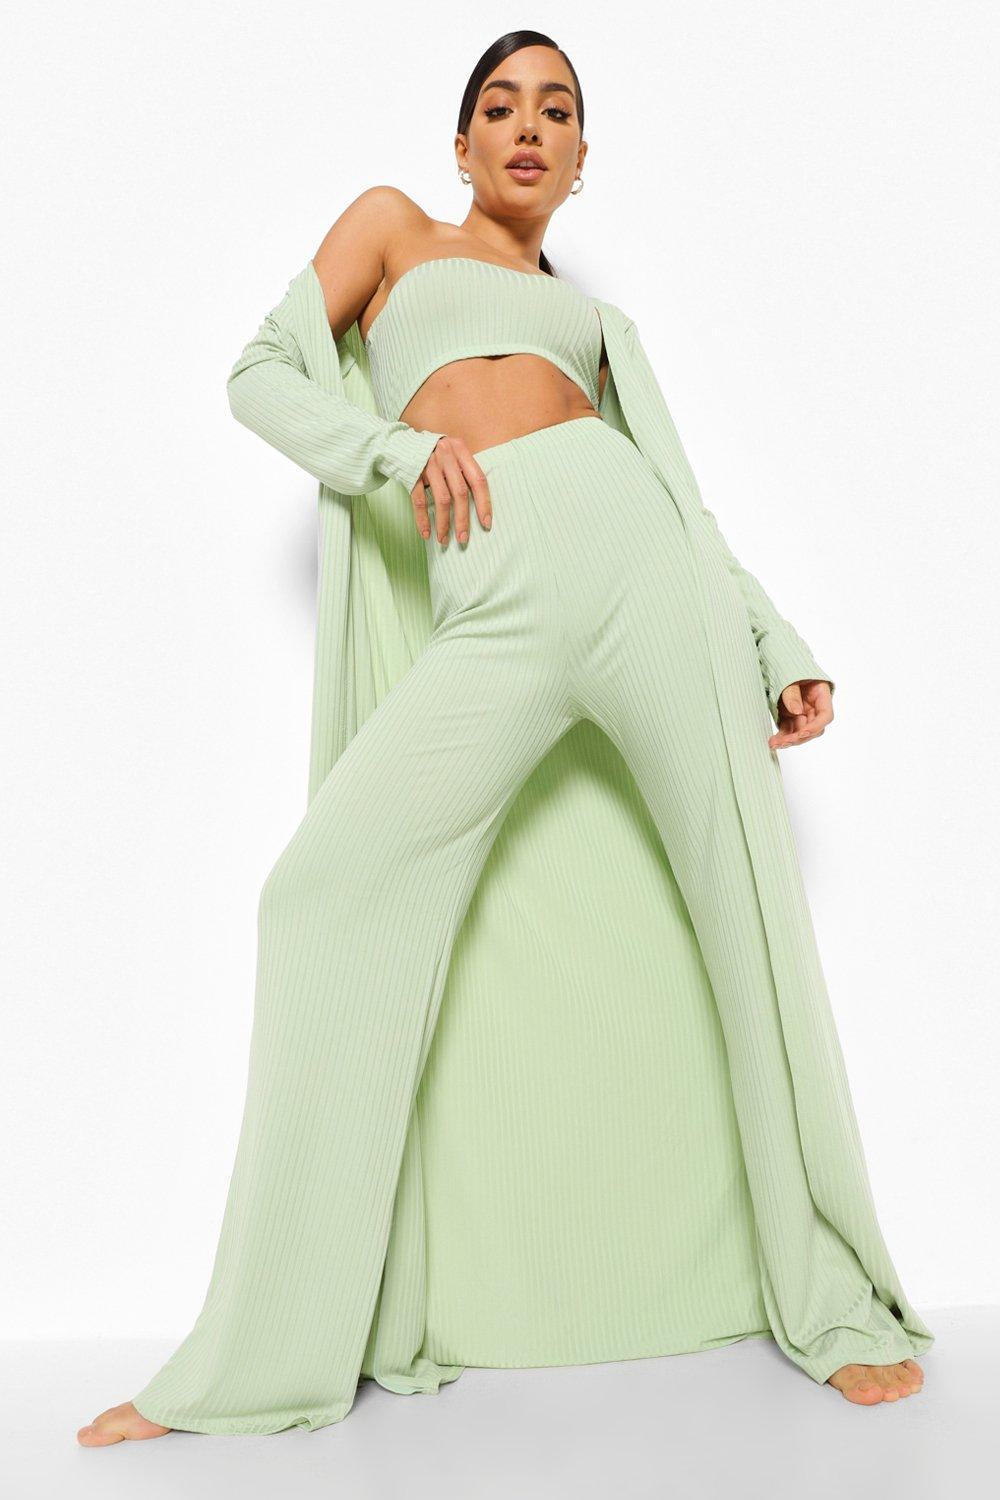 70s Clothes | Hippie Clothes & Outfits Womens Wide Rib Maxi 3 Piece Lounge Set - Green - 12 $25.00 AT vintagedancer.com